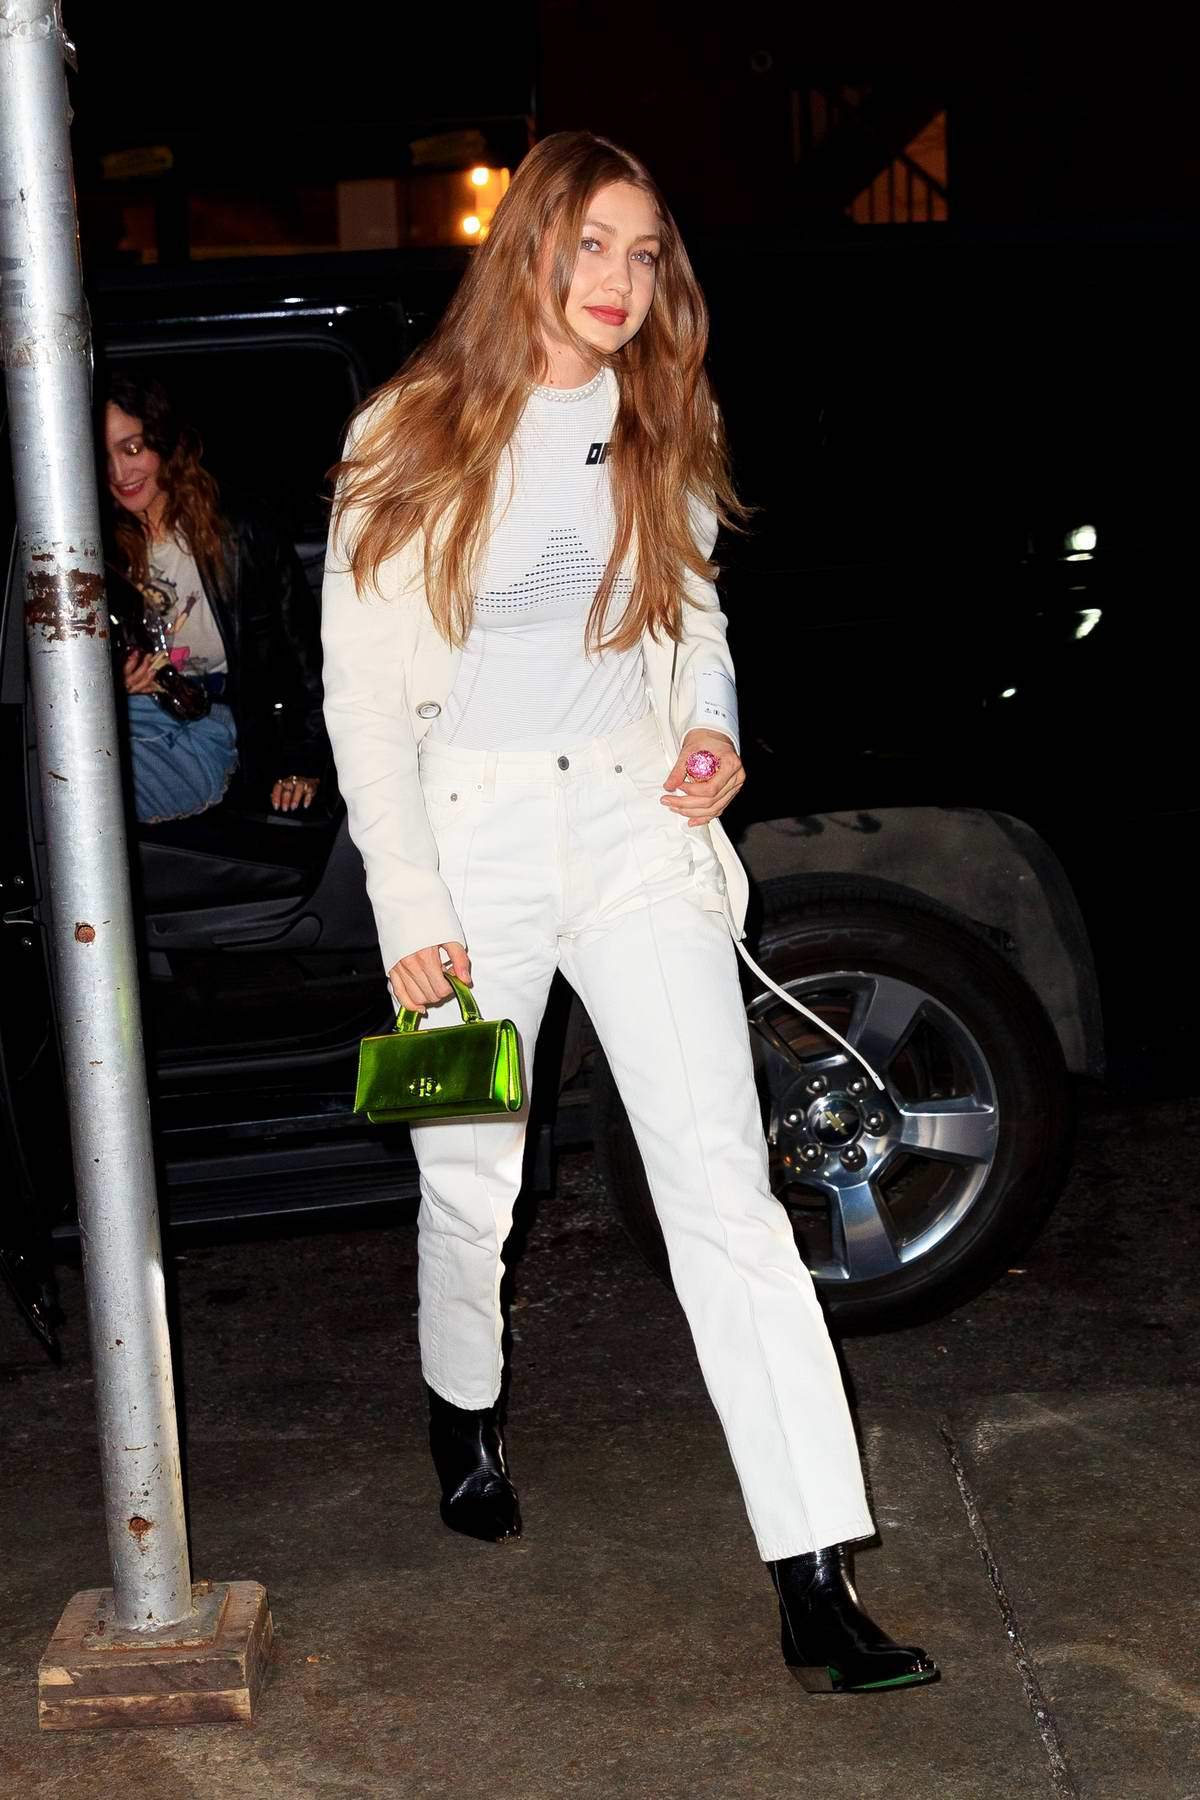 ec950477f58 gigi hadid dons all white as she heads out for dinner with friends in new  york city-300319_6